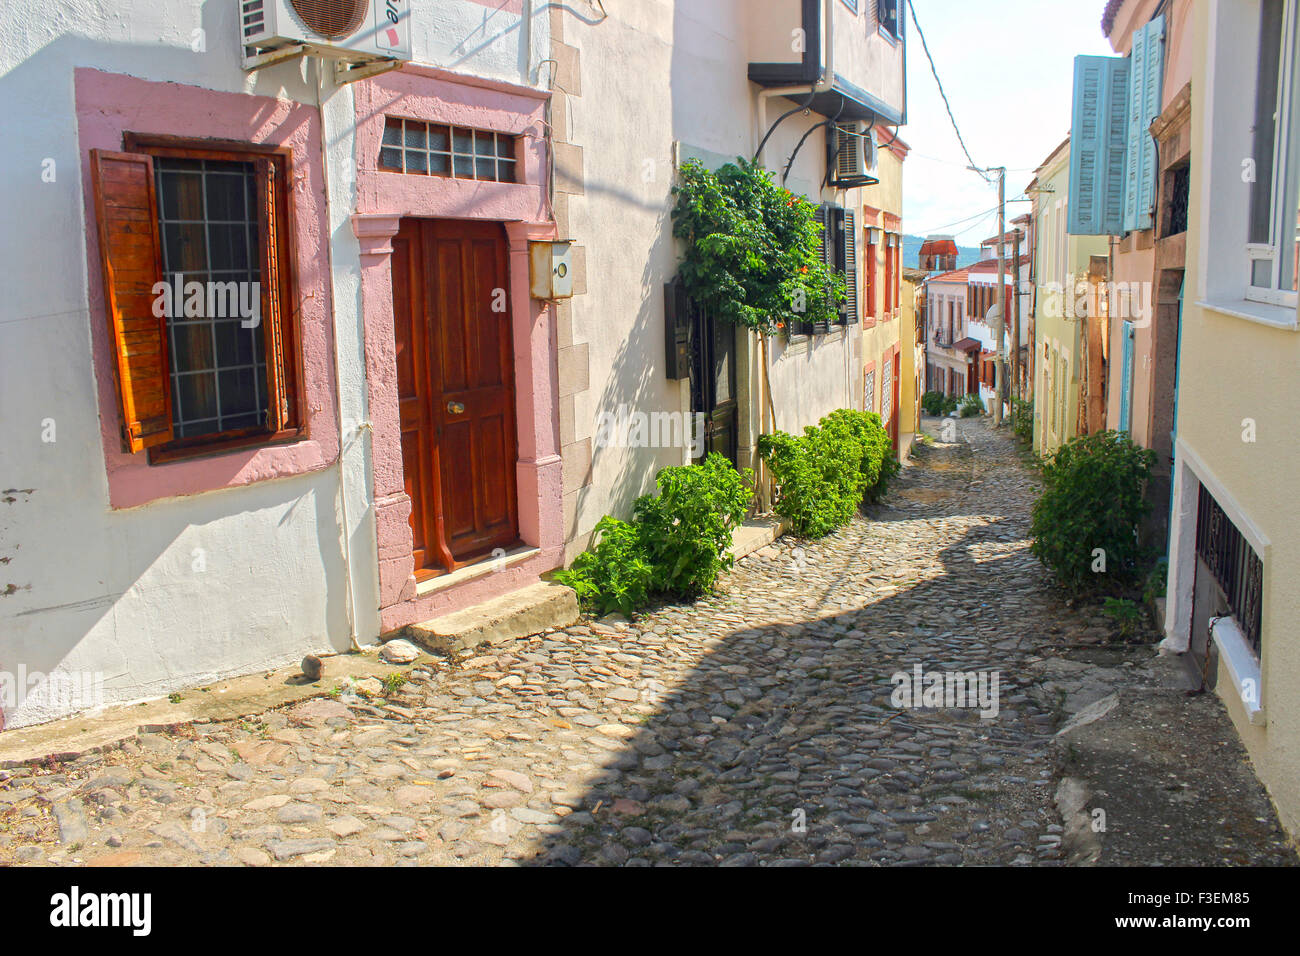 A narrow street of old touristic town, Cunda Alibey Island, Ayvalik. It is a small island in the northwestern Aegean - Stock Image